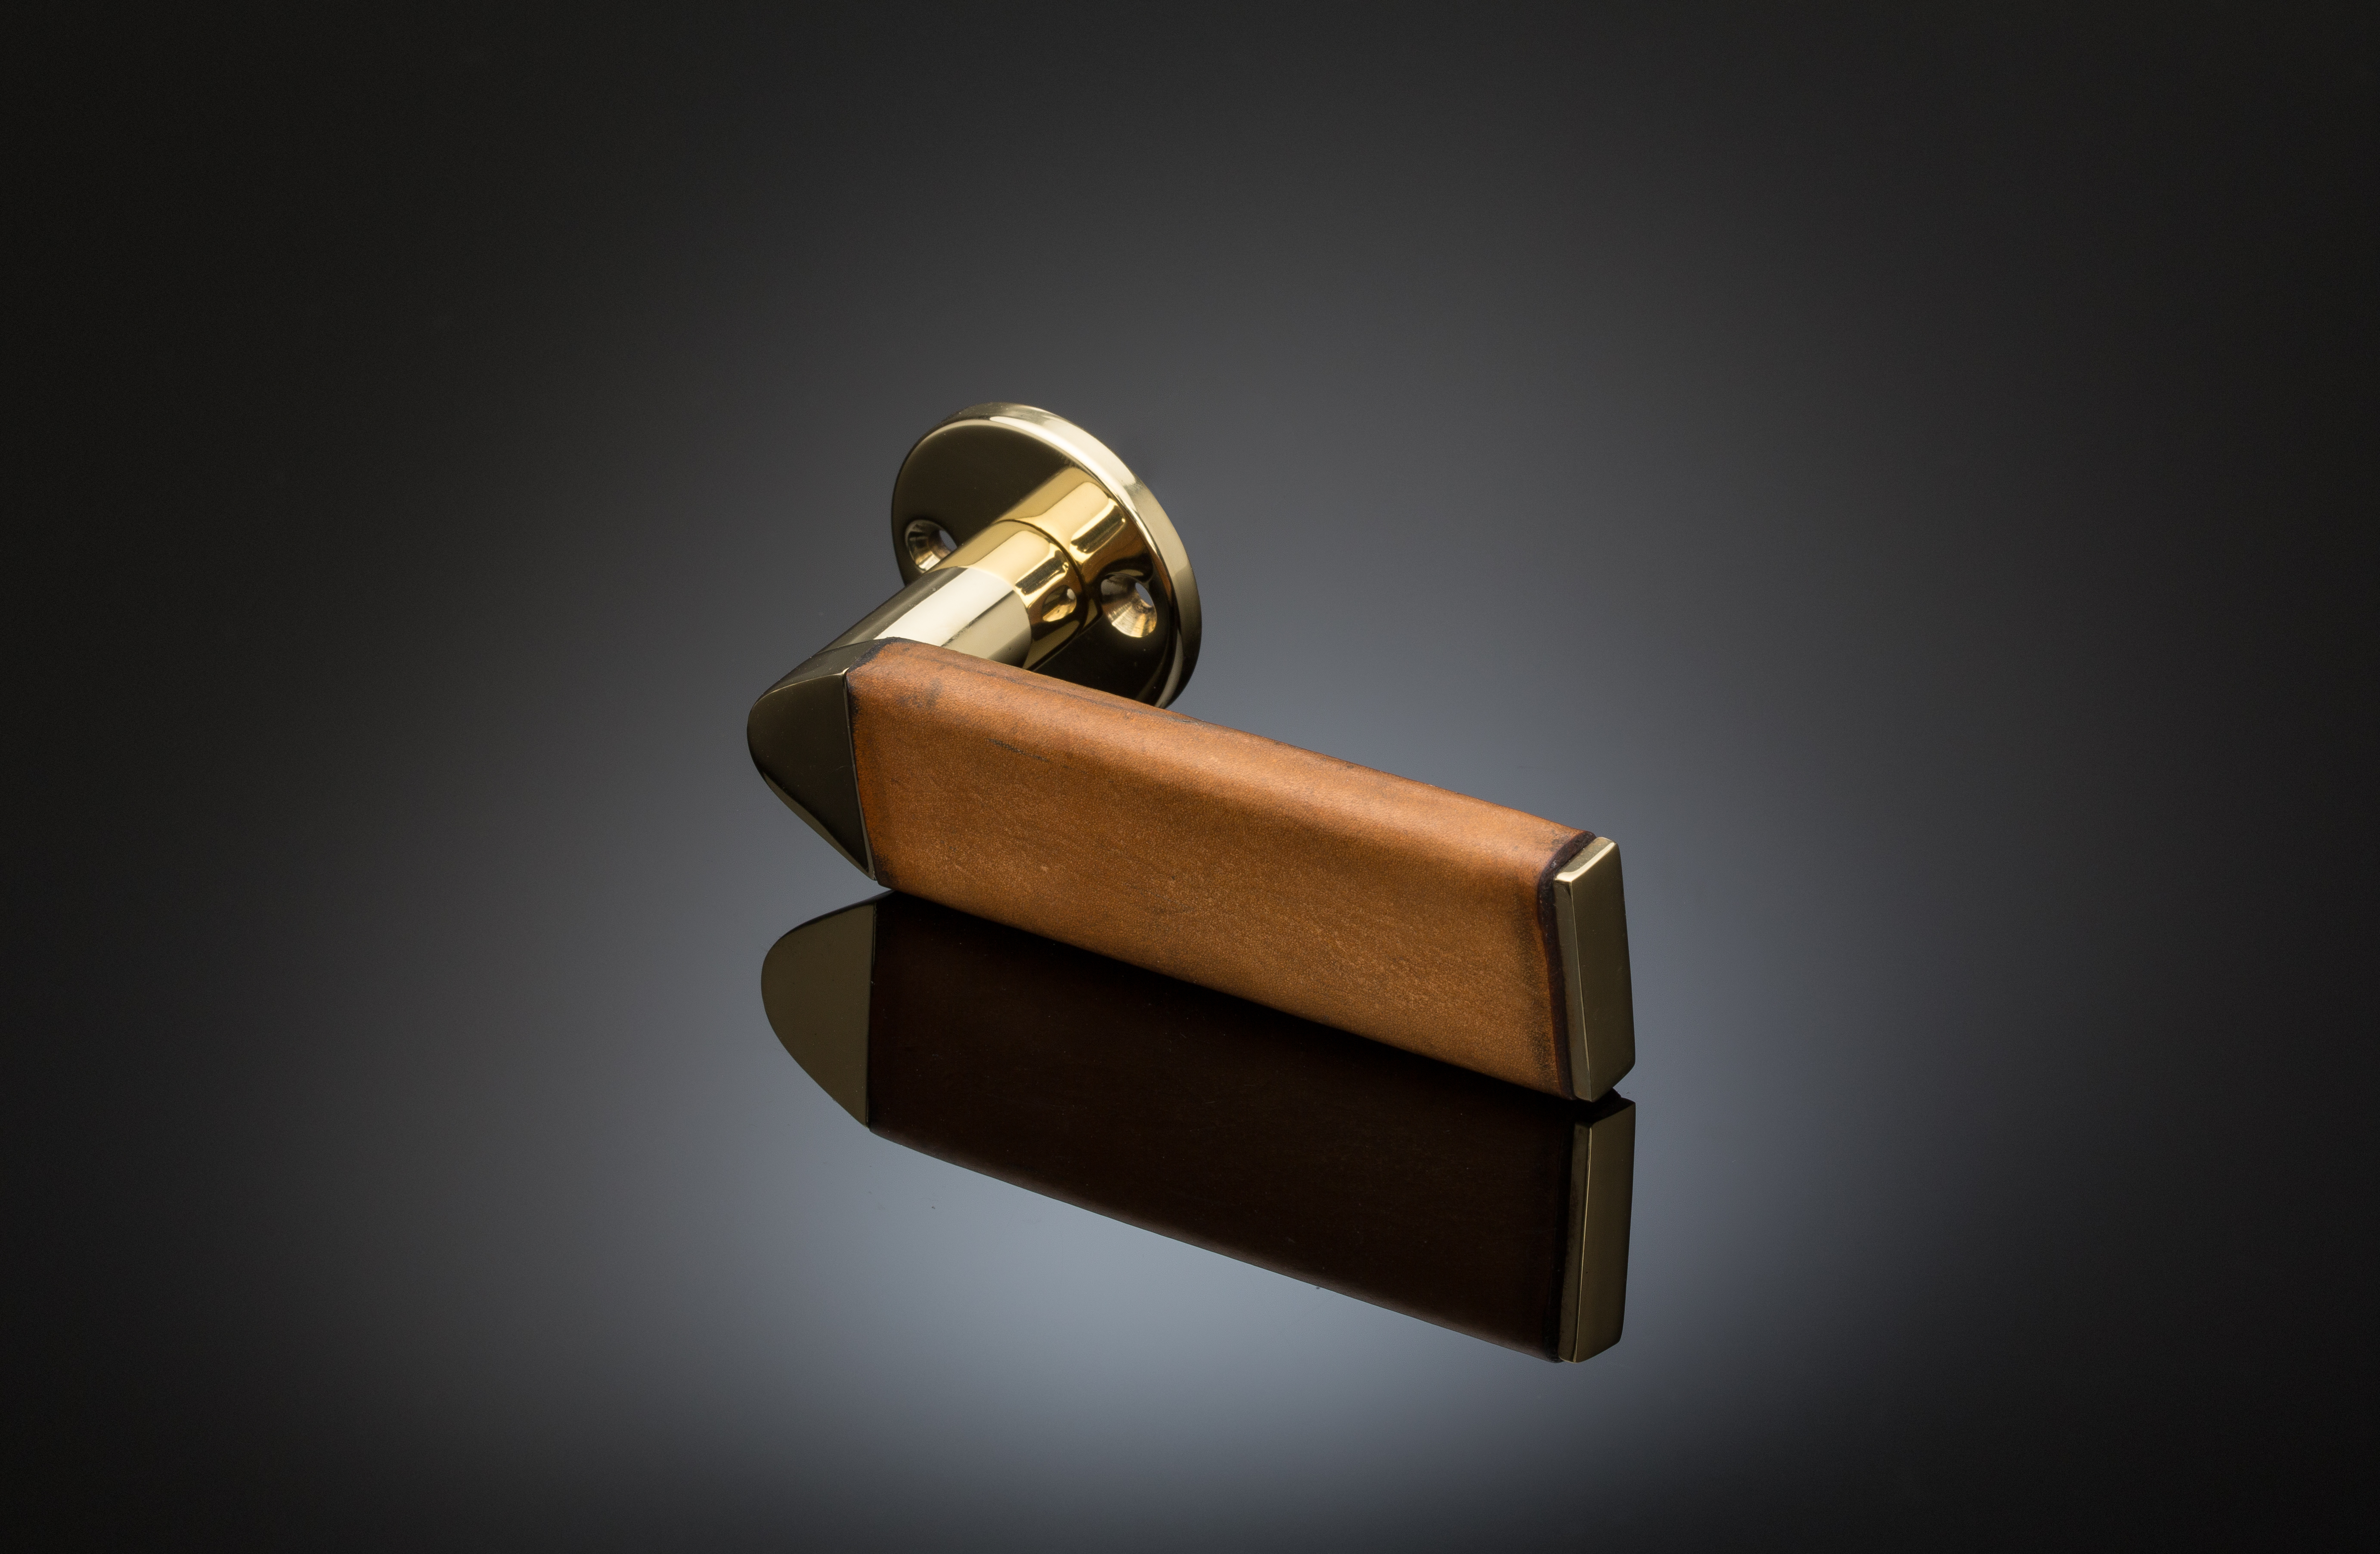 Leather covered lever handle designed by Juhani Pallasmaa, Finnish architect, leather and bronze material, Venice Biennale